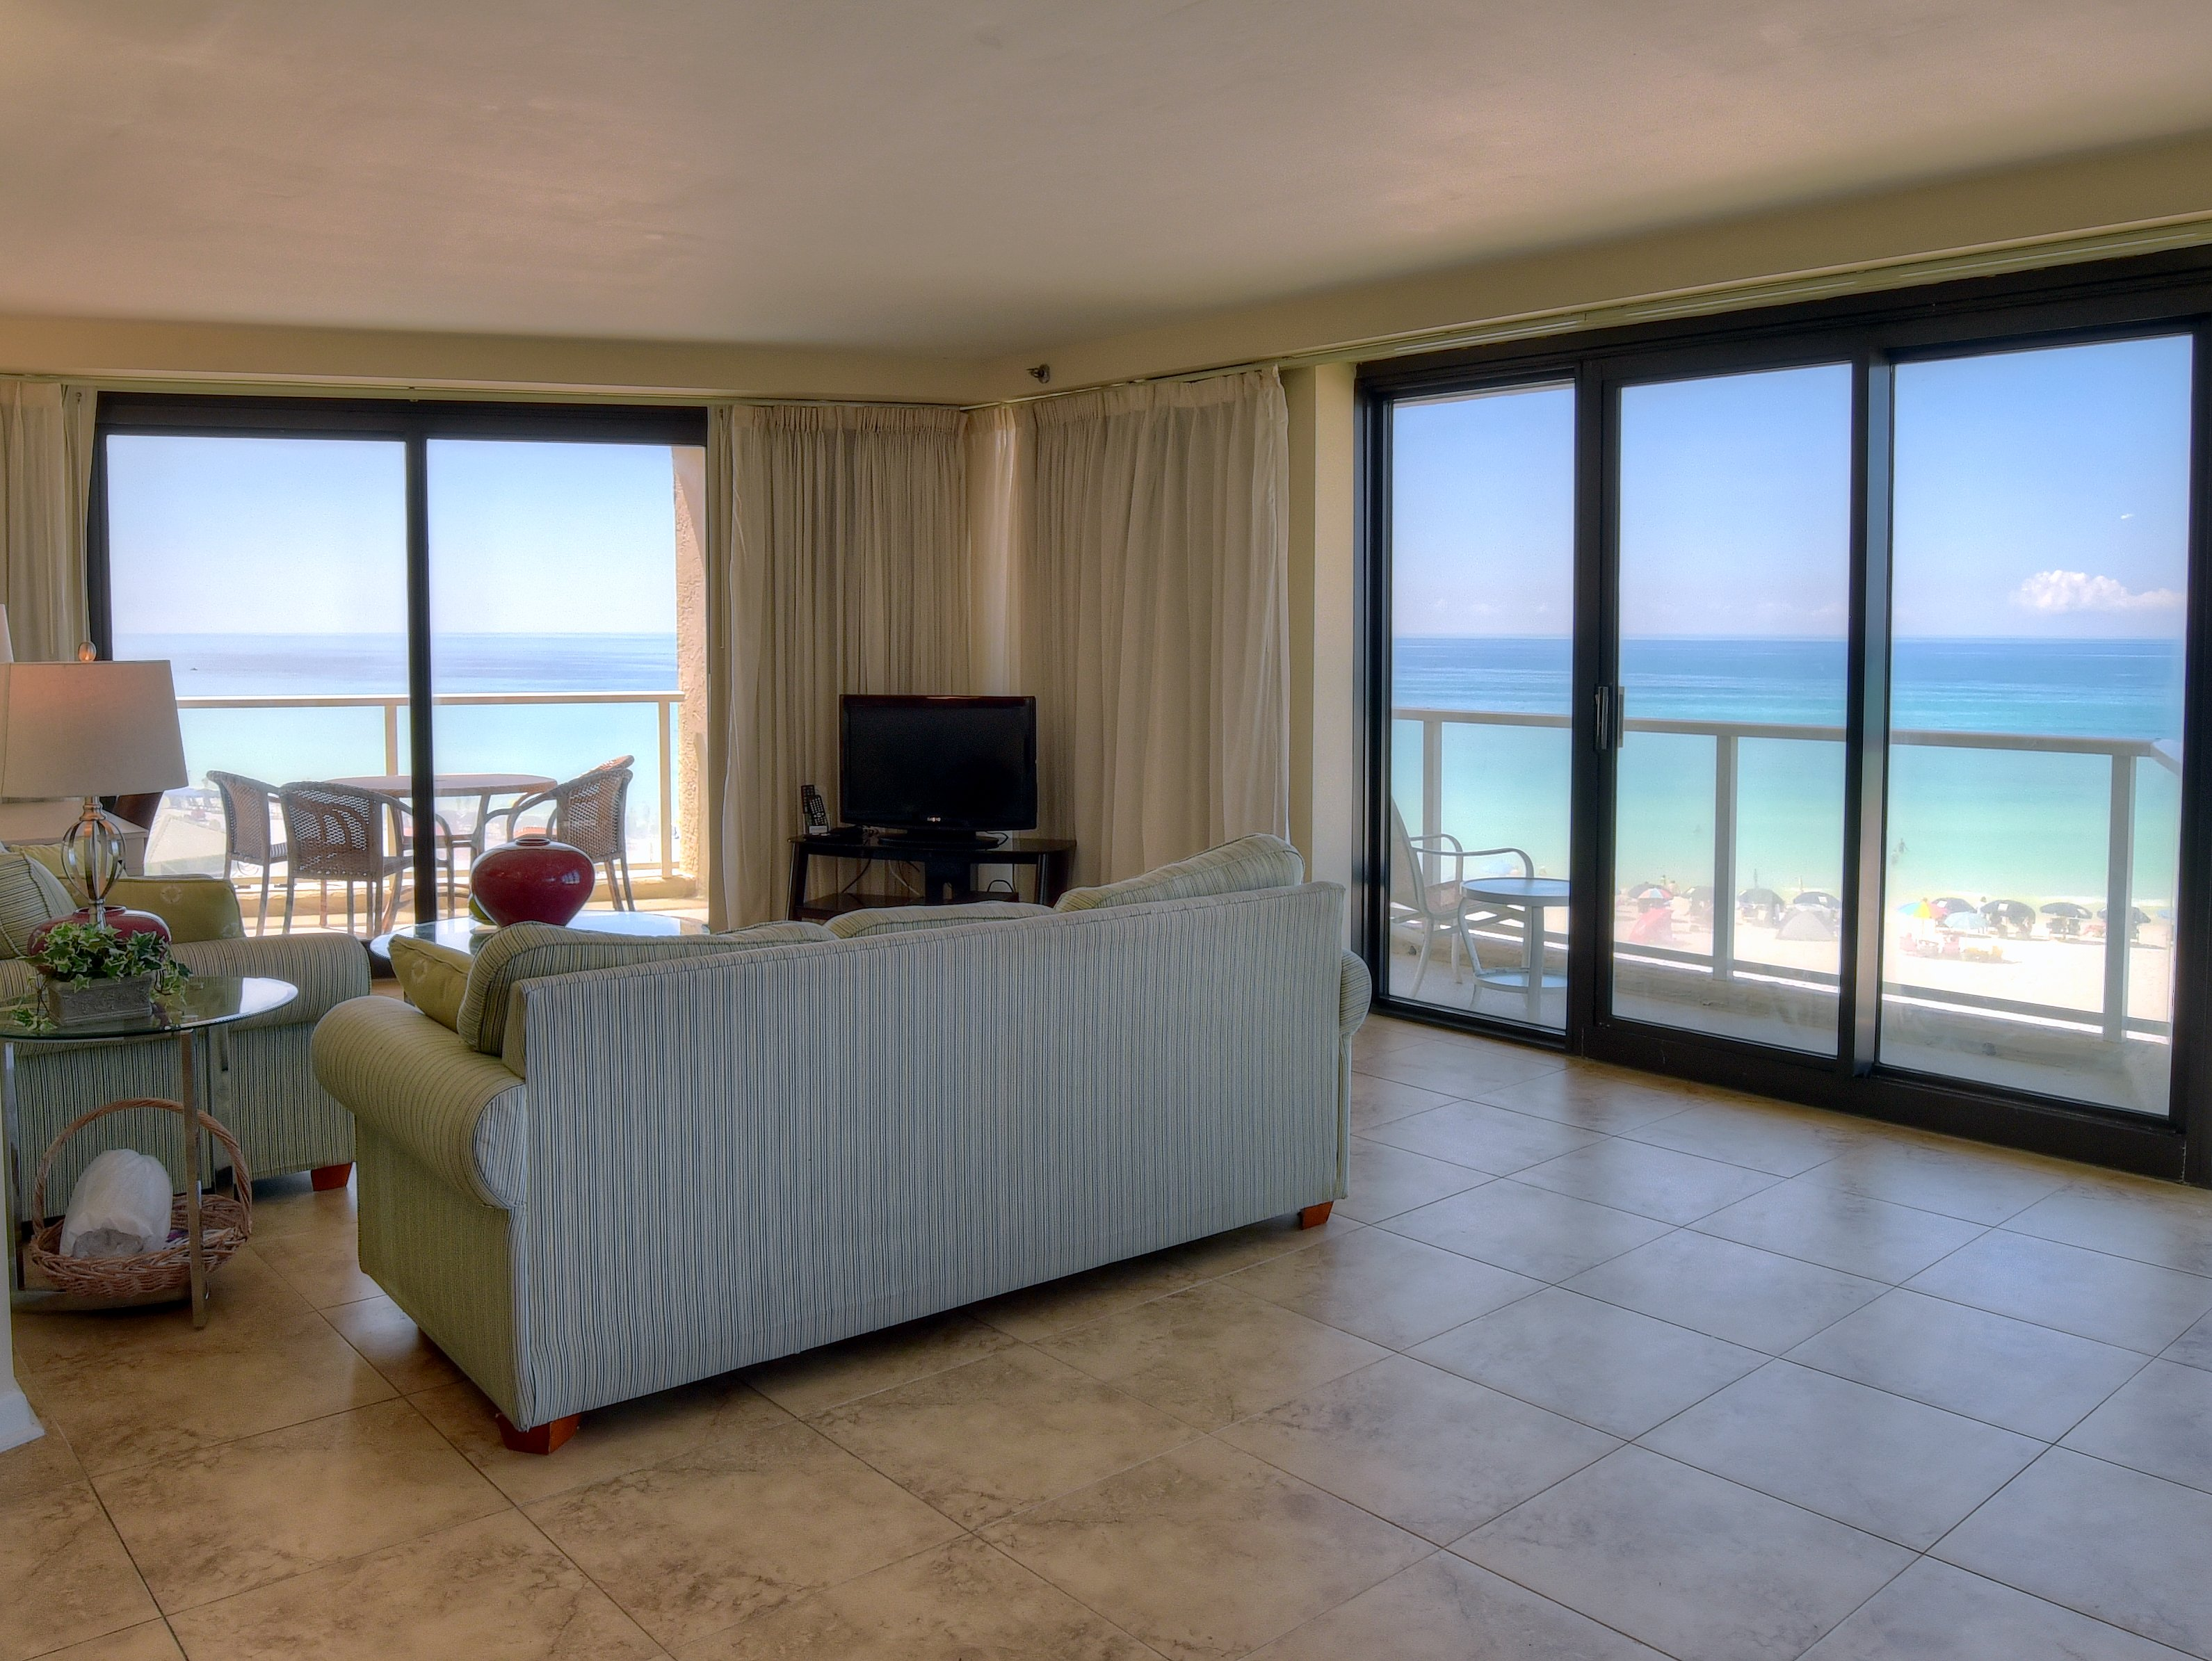 4243 Beachside Two Condo rental in Beachside Towers at Sandestin in Destin Florida - #9